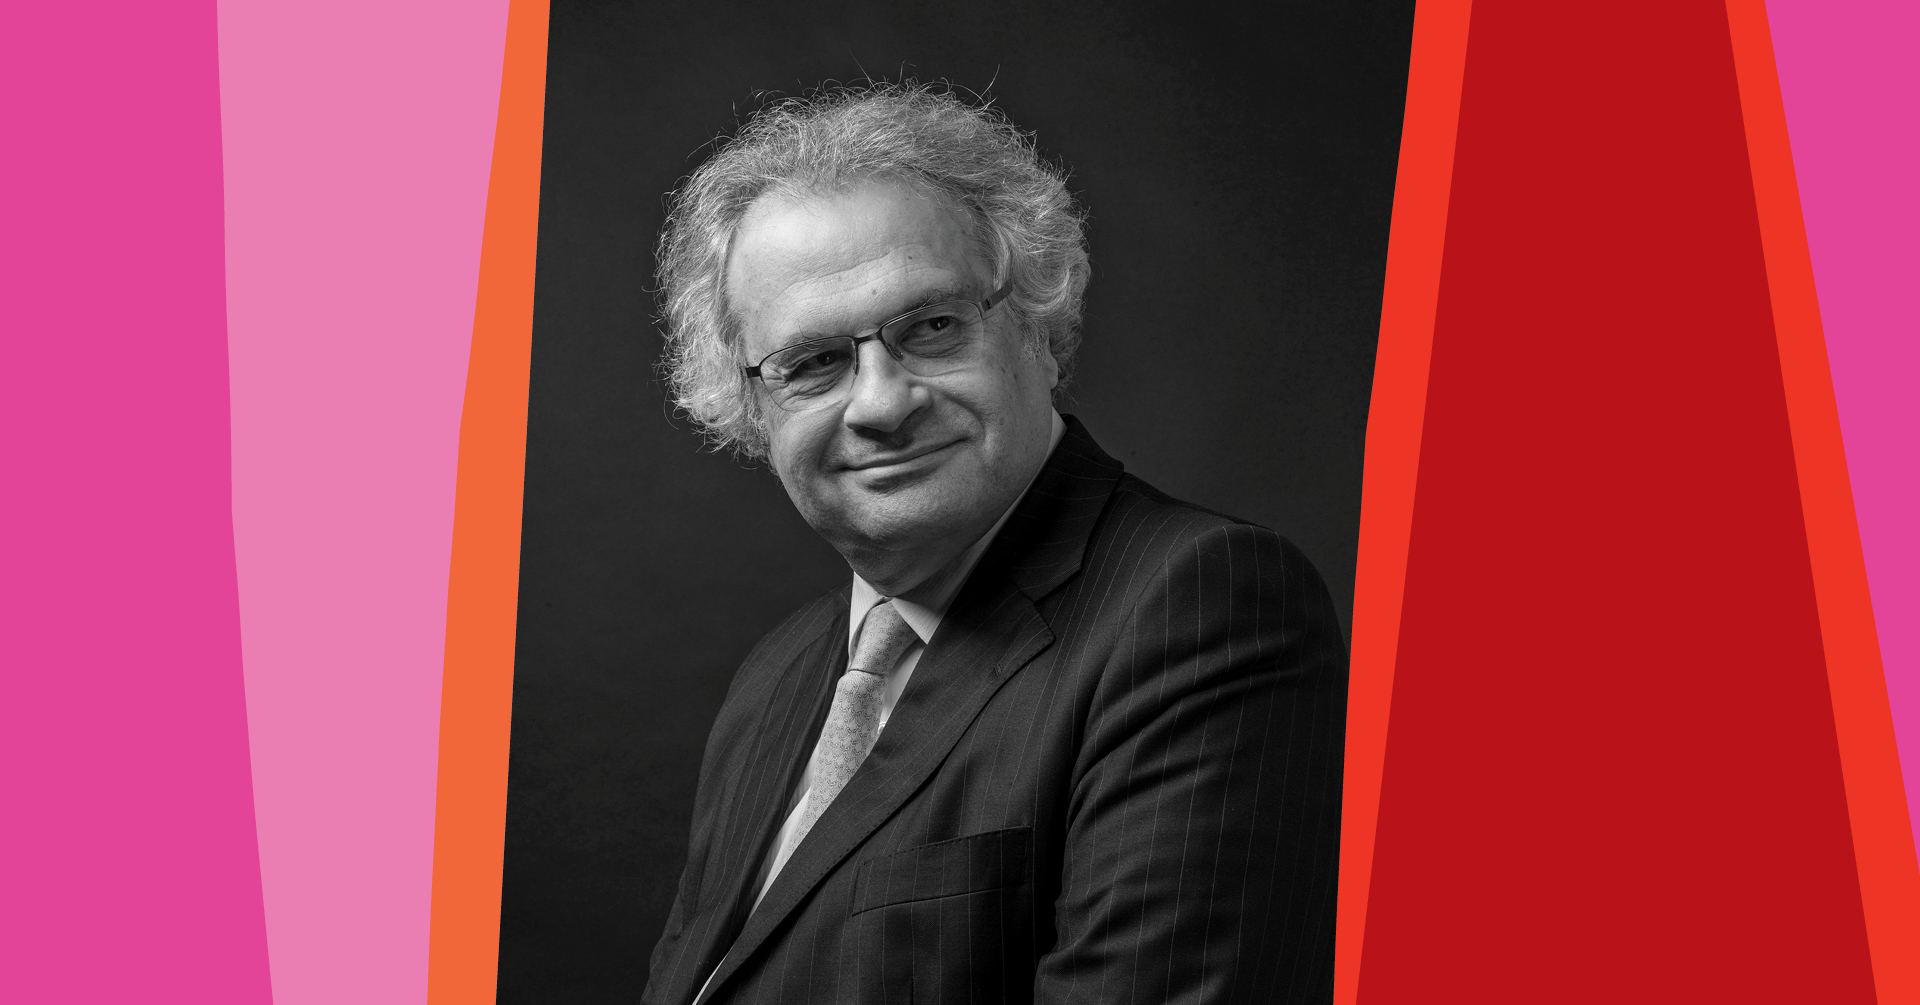 Our World Adrift: Amin Maalouf